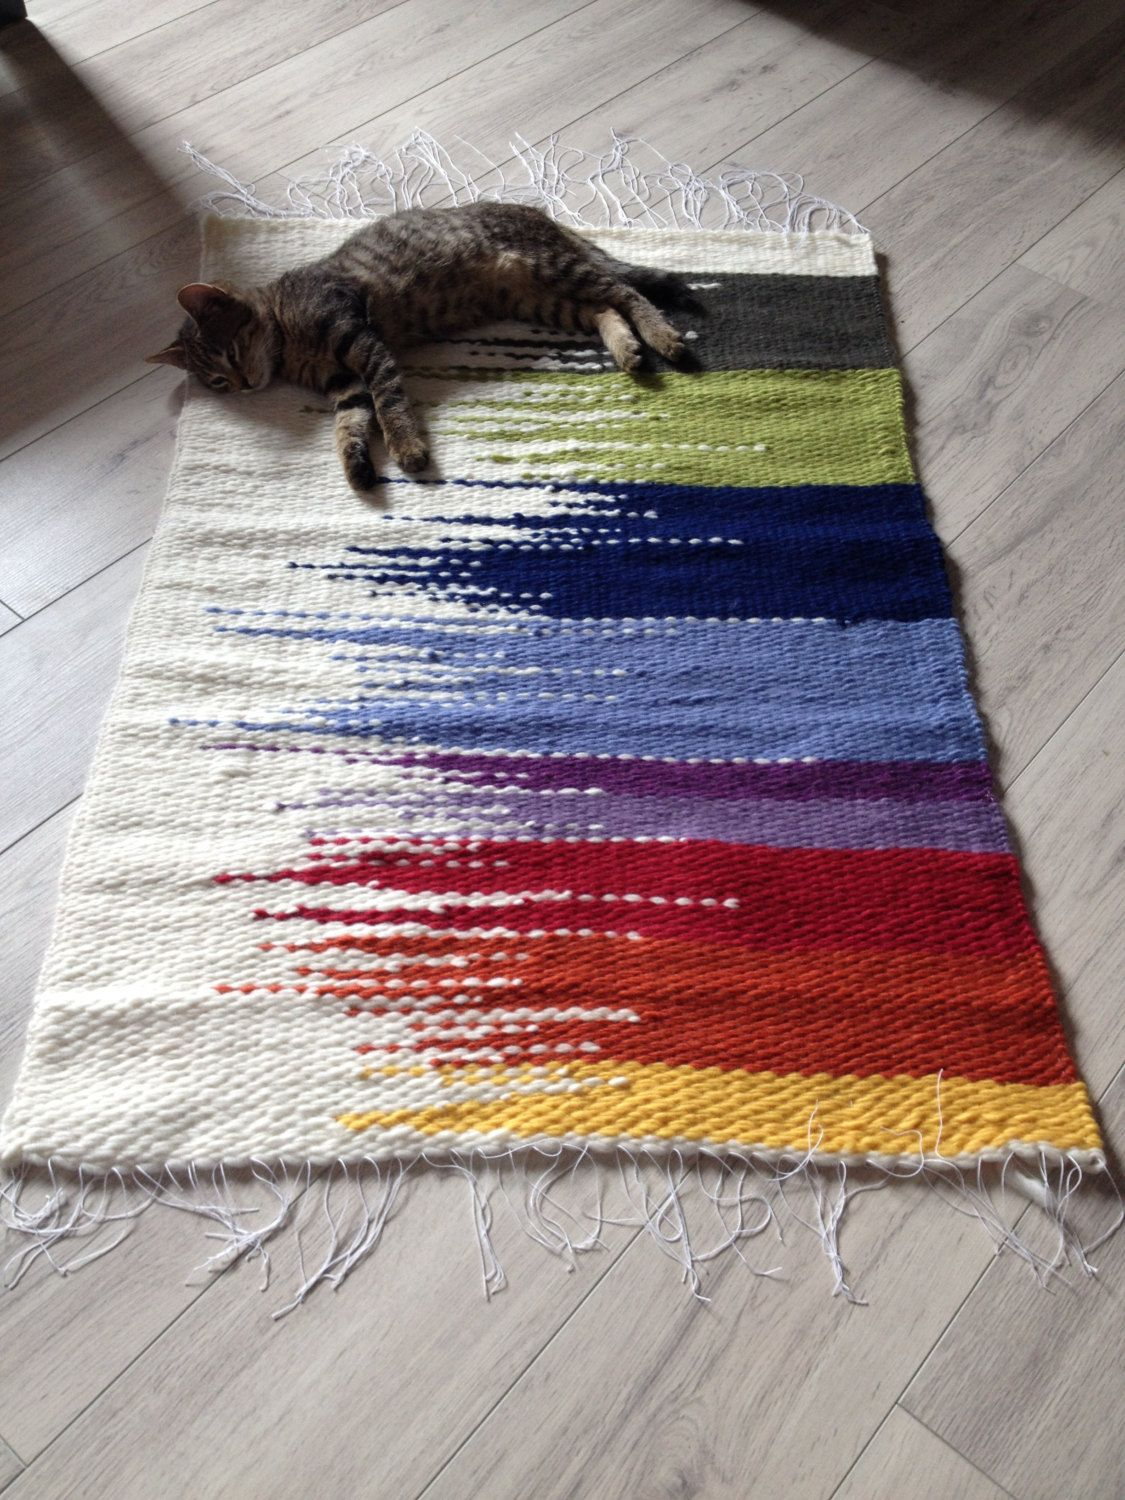 Handmade woven rugs woven rug/100% wool rug/loom woven rag rugs/shaggy rug/recycled rugs/handmade  woven rug/colorful scraps/hand JCULUYX